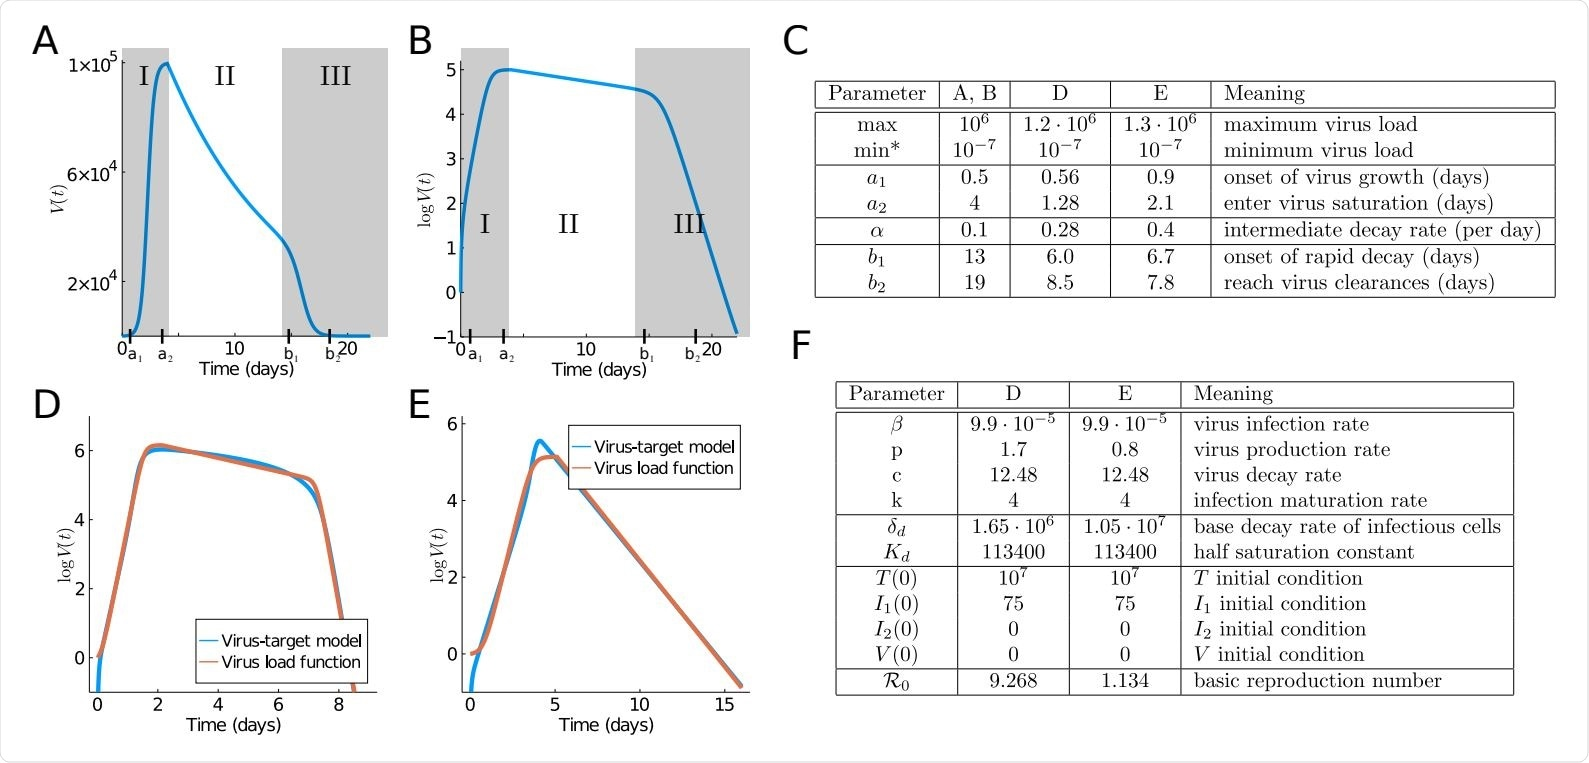 """Typical virus load curves. The virus load (""""titer"""") is usually reported as a dilution value, TCID50, that is needed to infect 50% of a given cell culture in (A) absolute scale and (B) logarithmic scale. Shadow areas indicate the three phases in which we divide the virus load progression. (C) Parameters of the standard virus load function (1) corresponding to A, B, D and E. Virus load curve reported in [12] are used in A and B. (D-E) Comparison of the viral load curve from the viral target model (2) with the viral load function (1). Viral target curve showing triphasic and biphasic response are shown in (D) and (E), respectively. Parameter values for the viral load function fitting to the viral target model are in C. (F) Parameters of the target model (2) corresponding to D and E."""